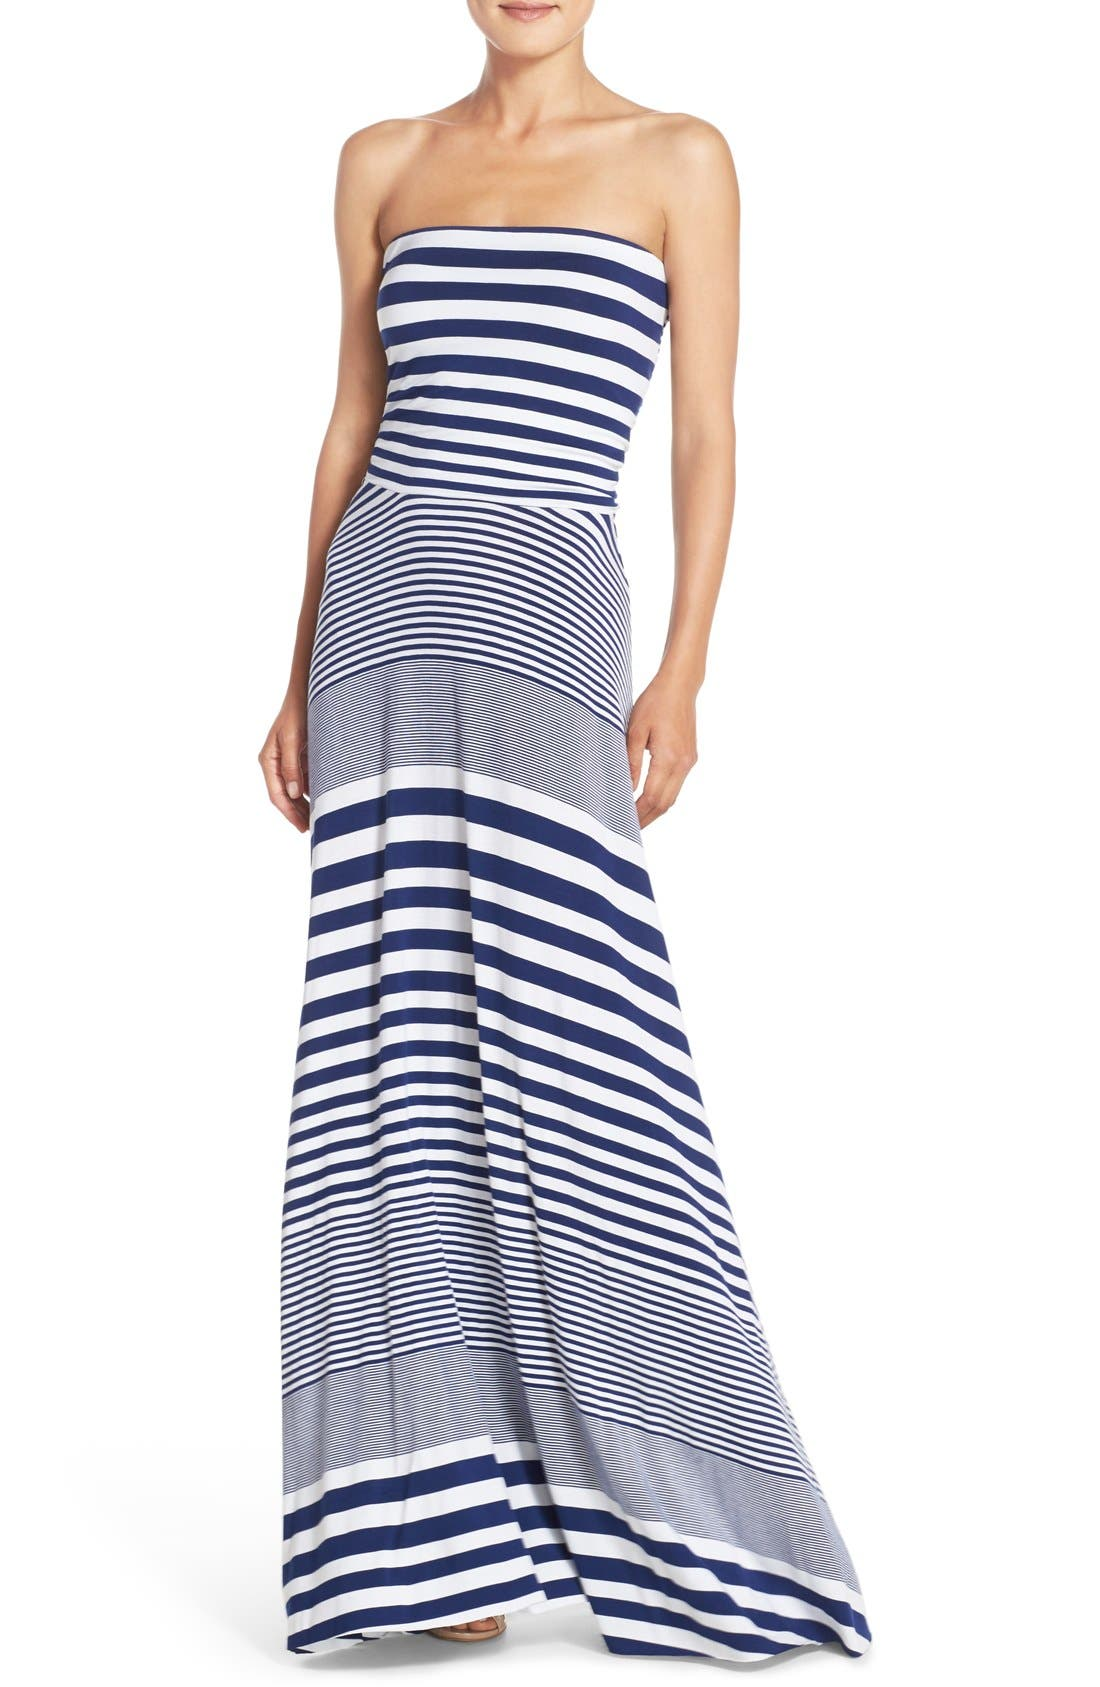 Felicity & Coco Stripe Strapless Maxi Dress (Nordstrom Exclusive)